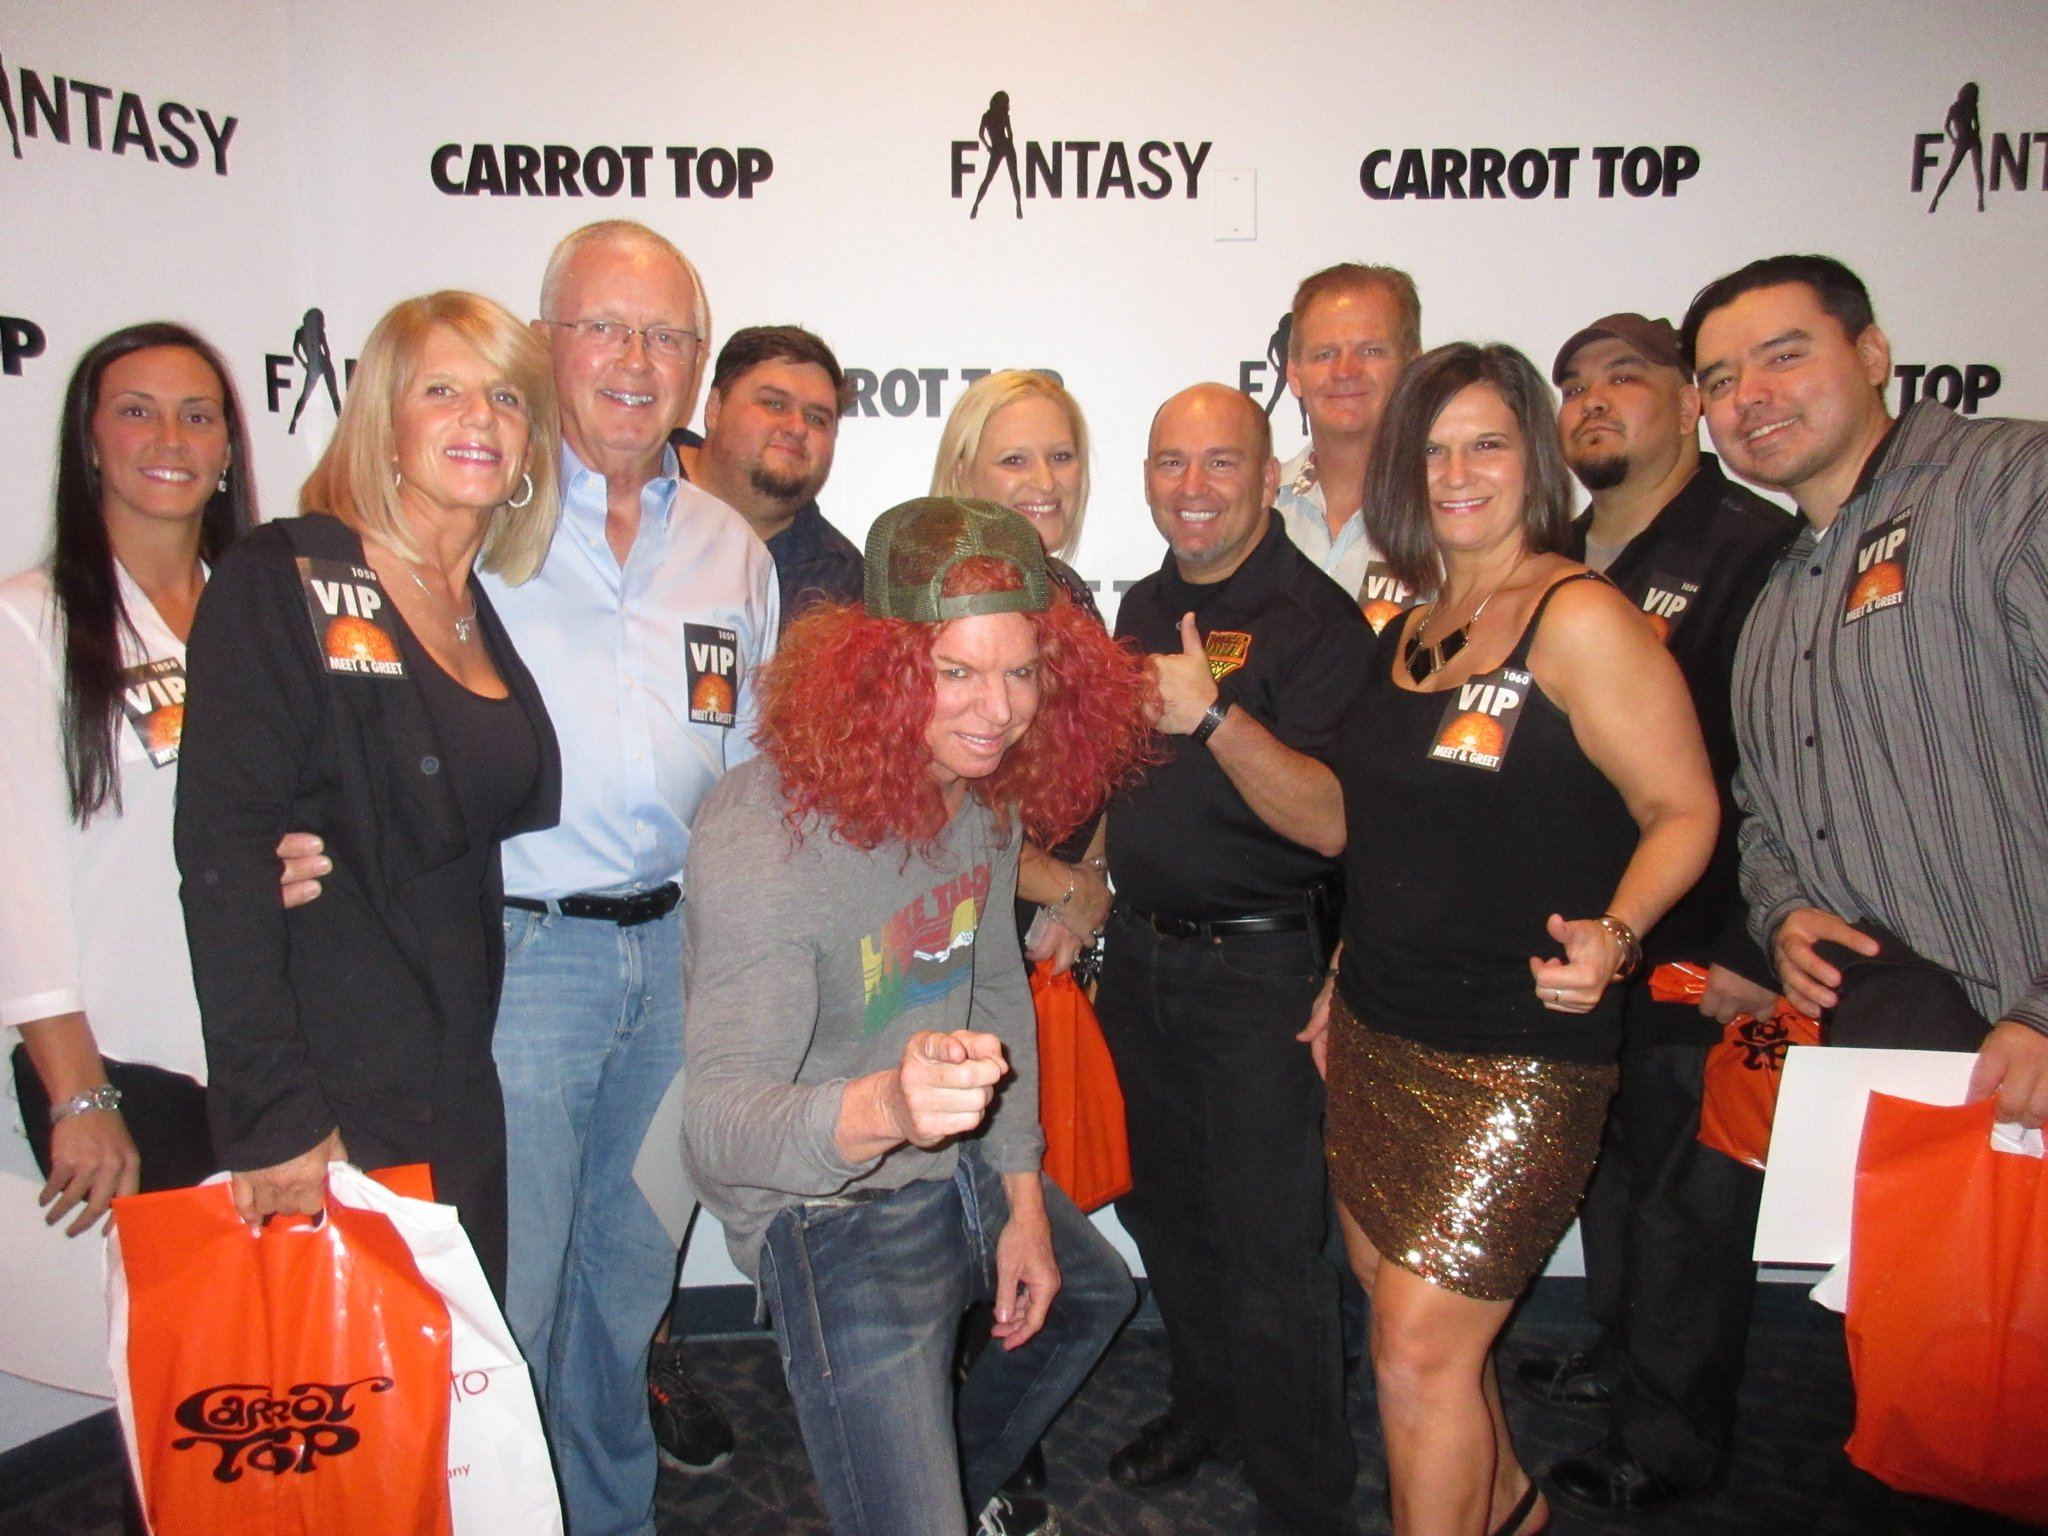 Carrot top on twitter bring your sundayfunday to the luxorlv for carrot top on twitter bring your sundayfunday to the luxorlv for the ctmeetngreet vip meetandgreet passes available at the box office or m4hsunfo